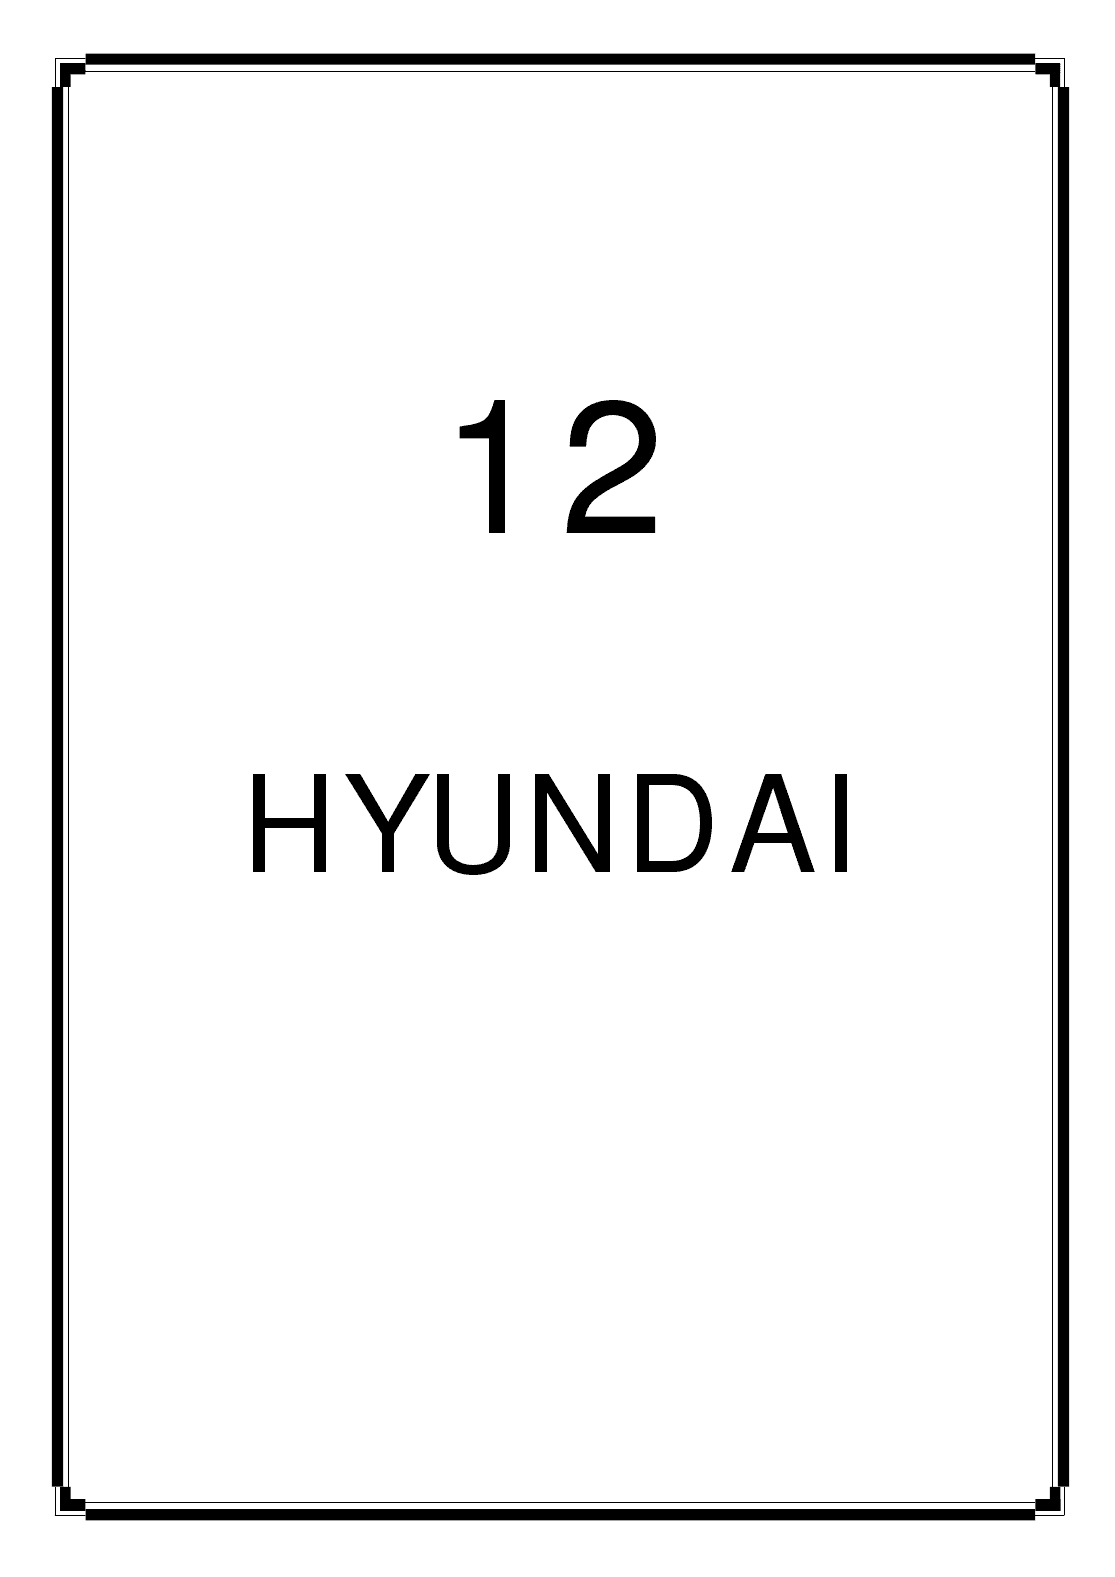 Hyundai Manual: Download Hyundai Immobiliser system called